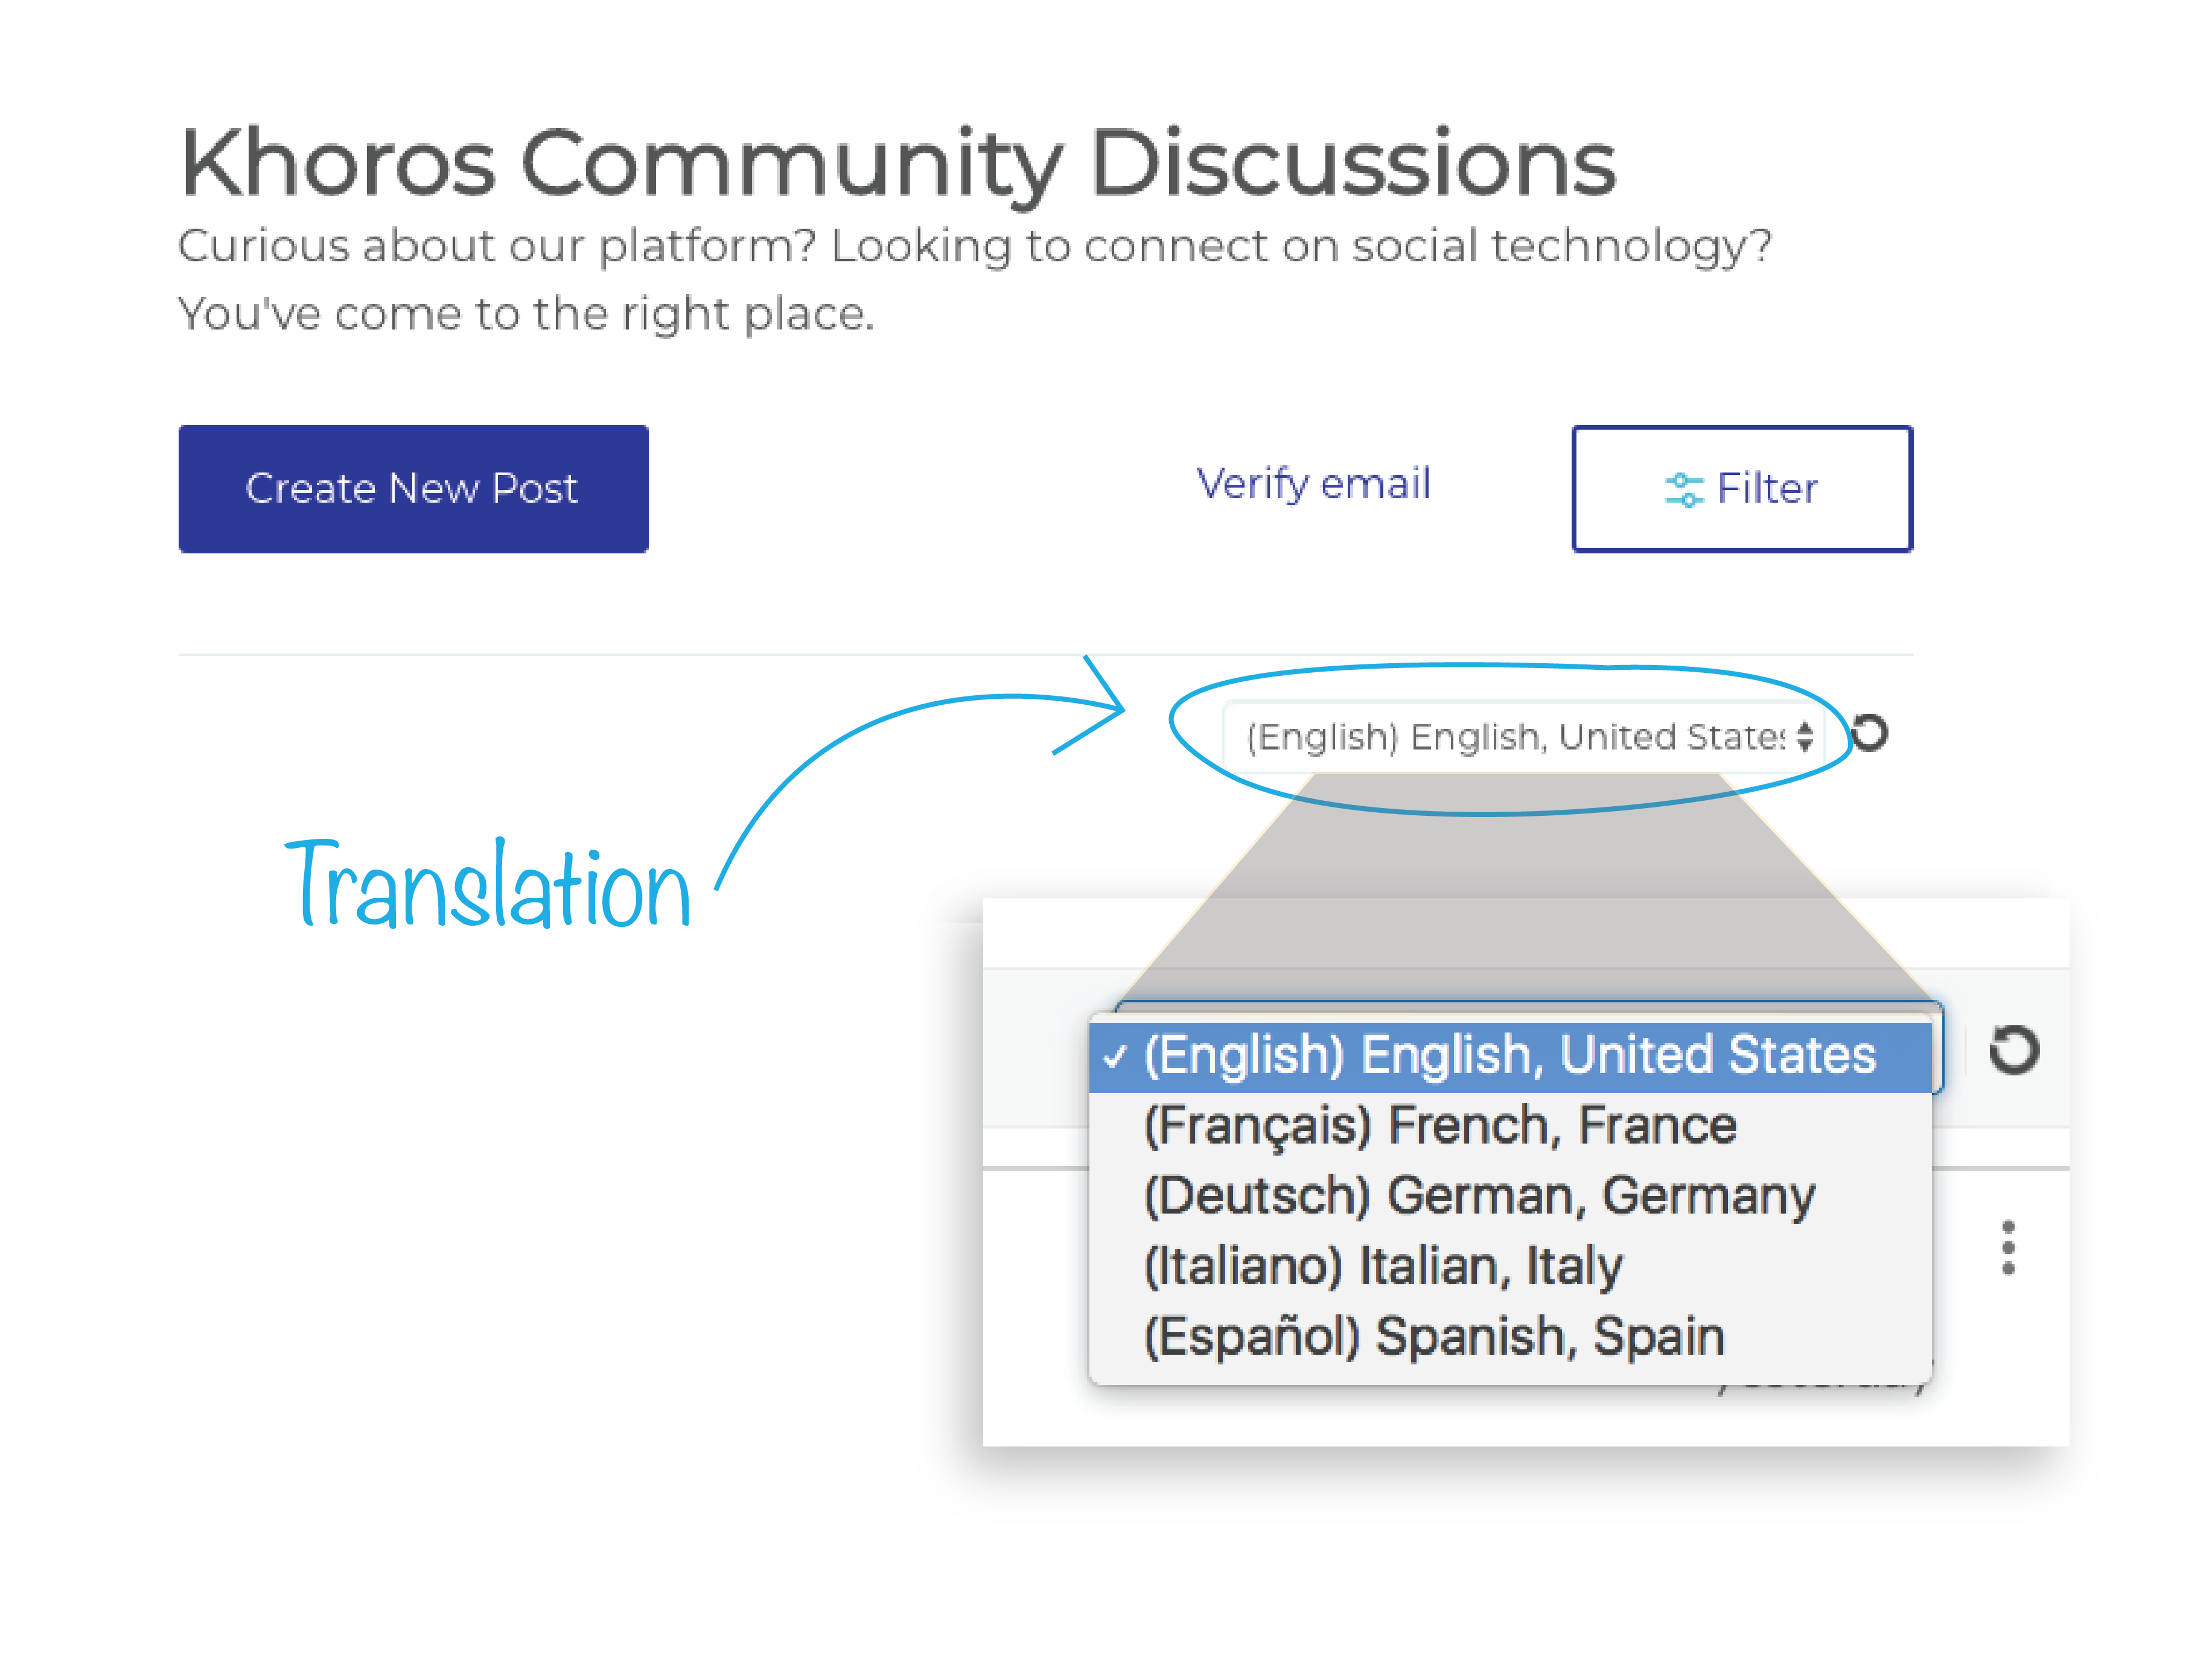 Locate the language and translation pull-down menu in Khoros online community